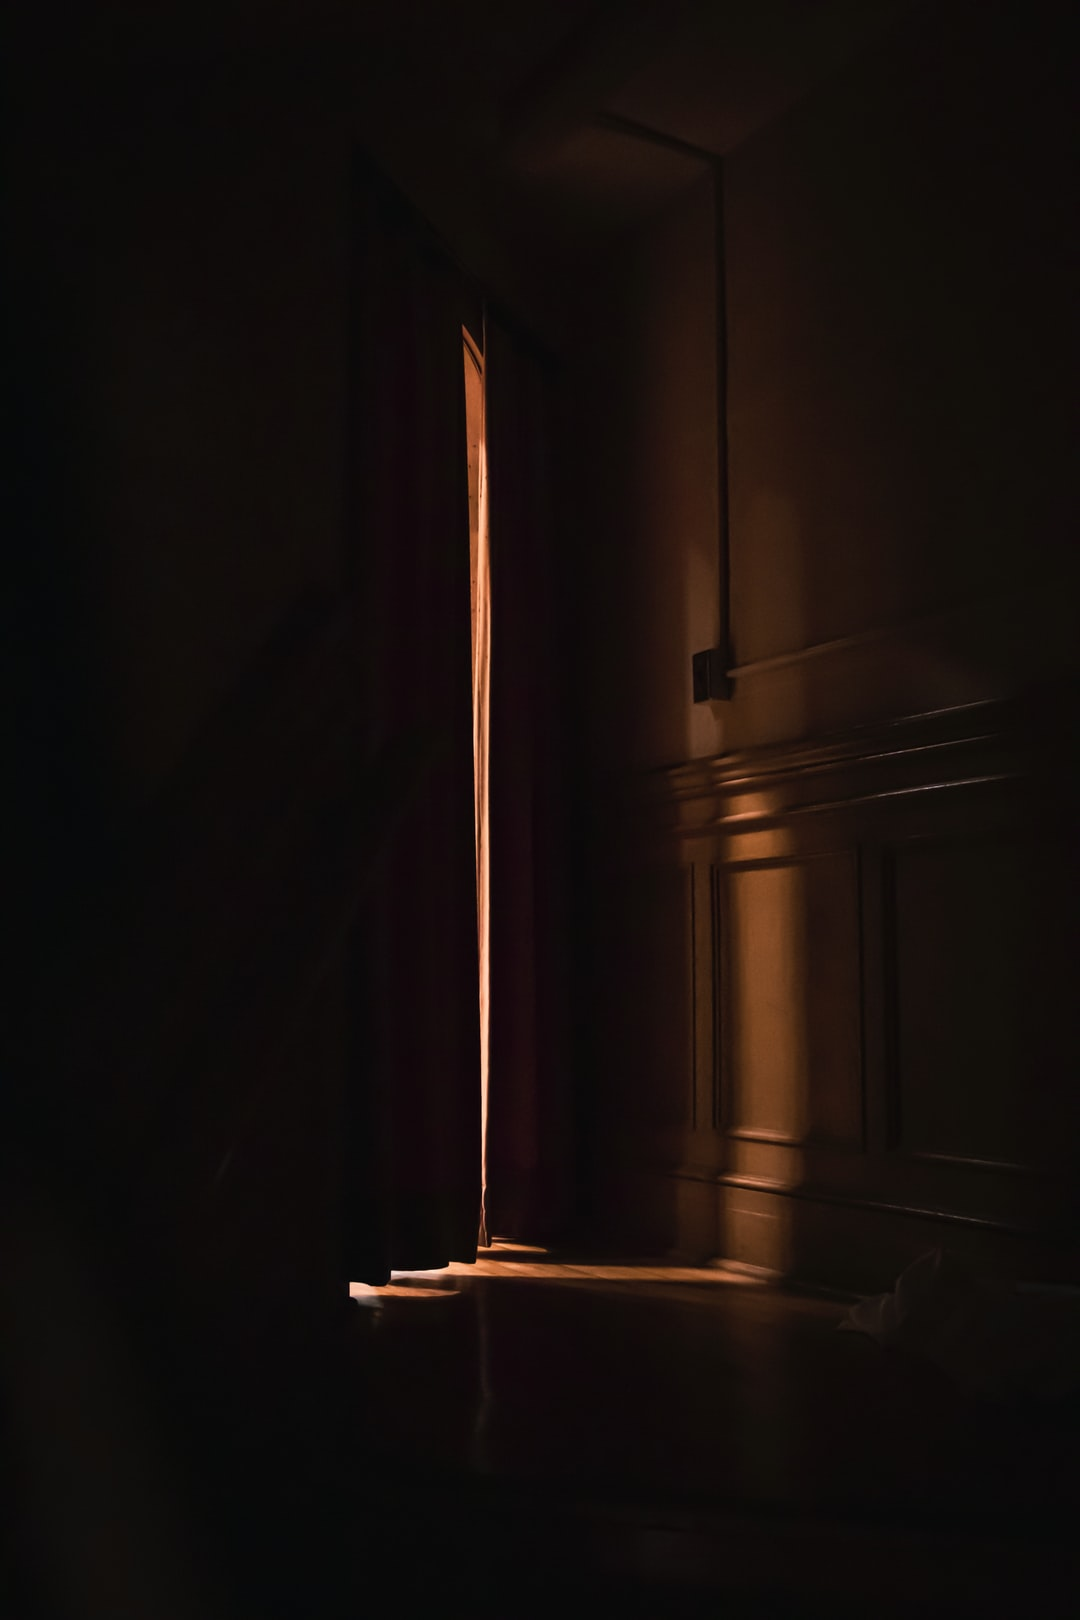 Ambient light through curtains